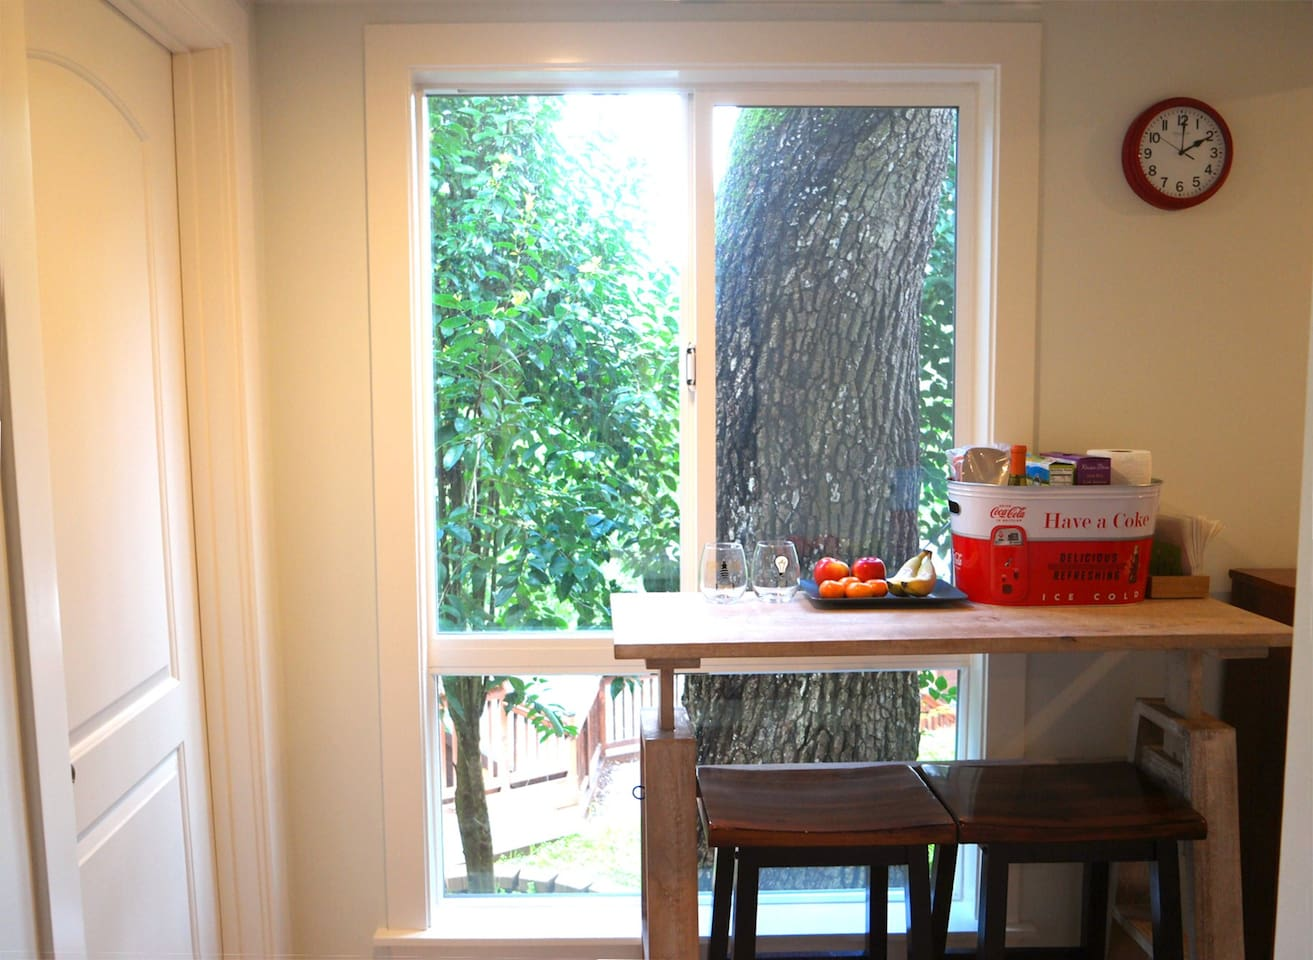 A  breakfast nook  in the Hallway: Exclusive for you!